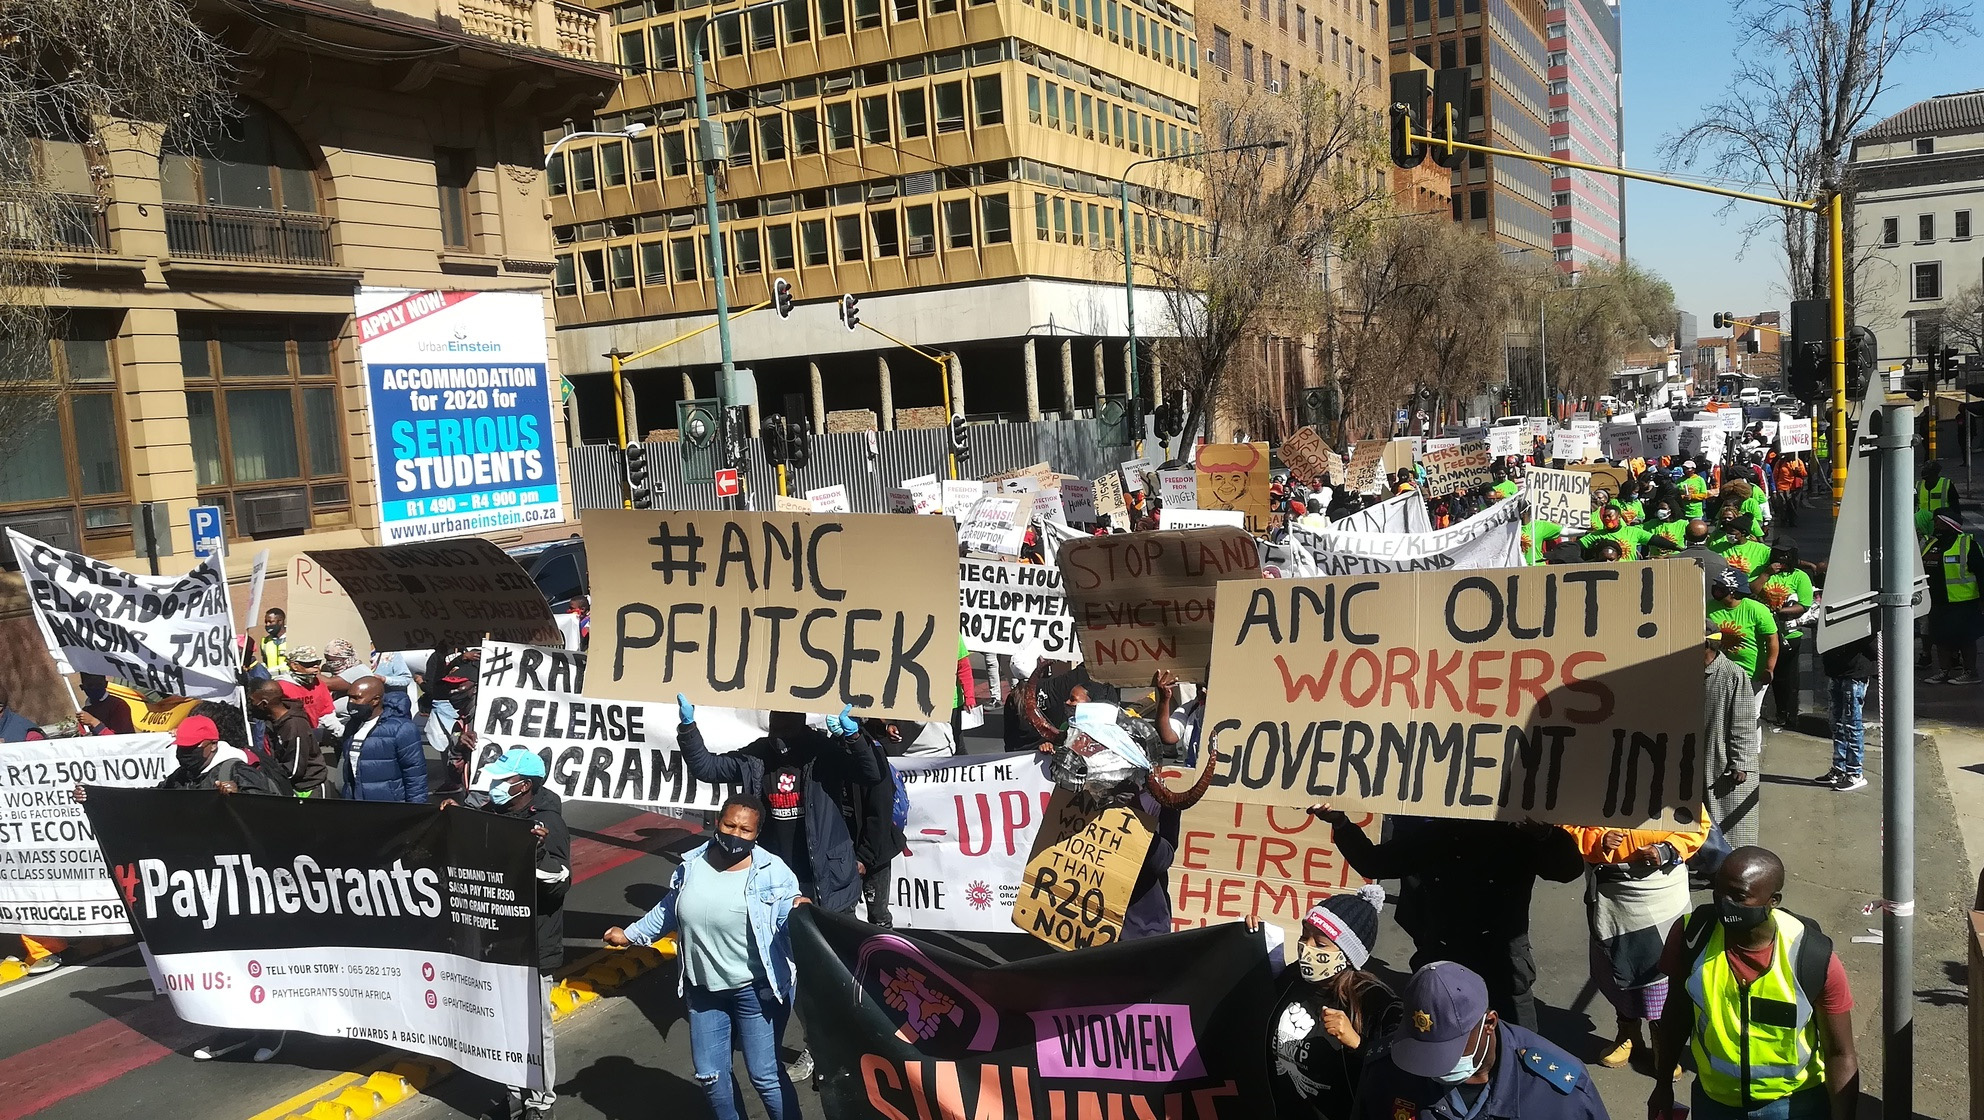 Hundreds protest in JHB against government's response to Covid-19 - Daily Maverick